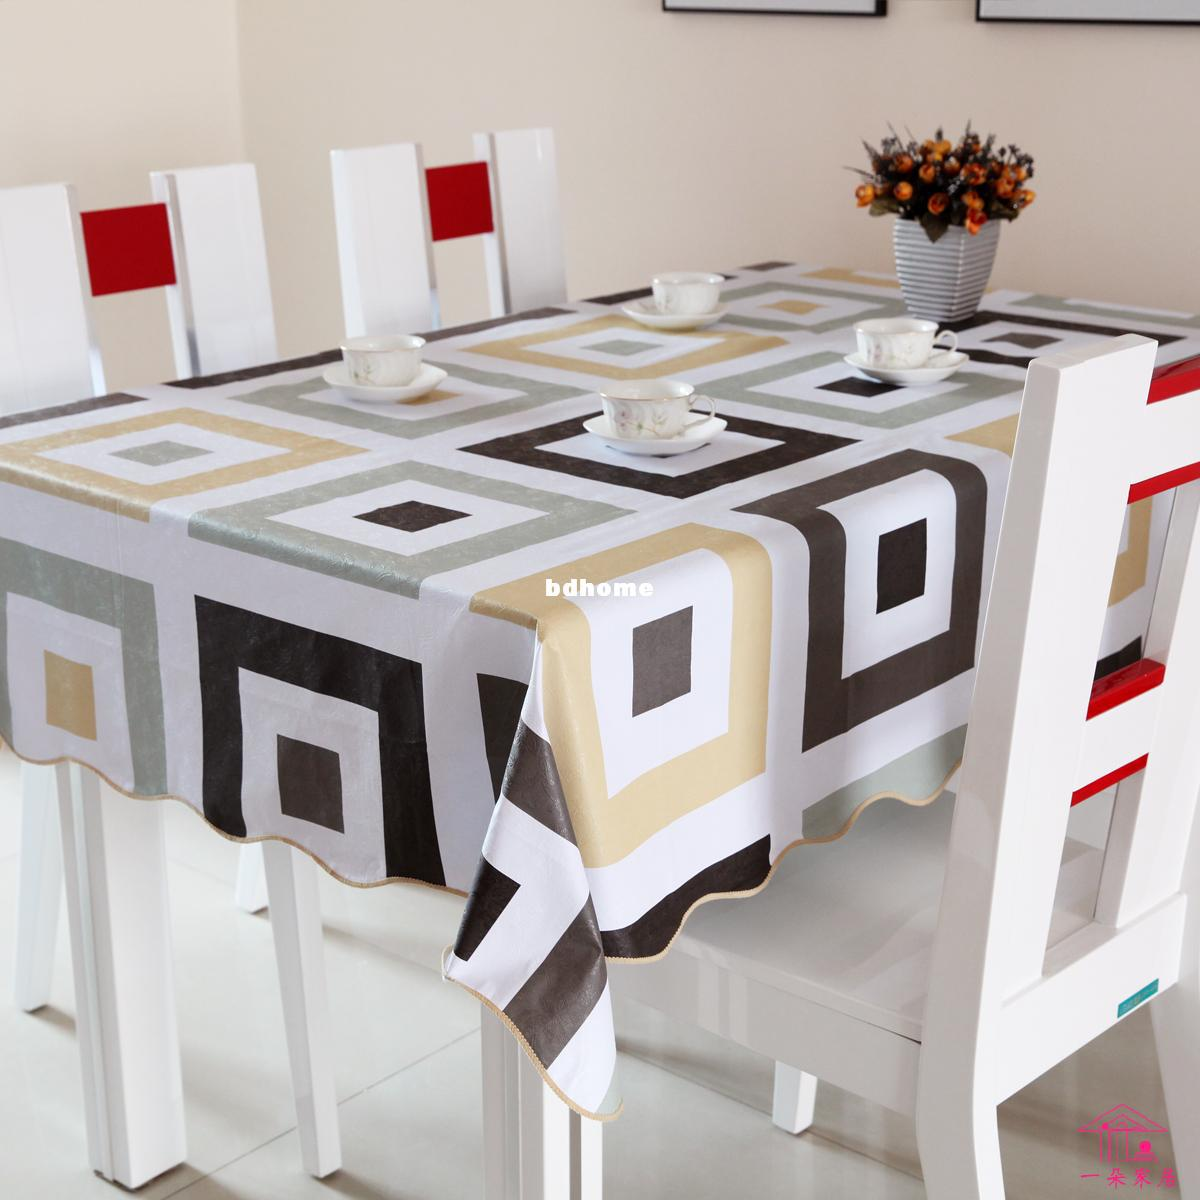 Pvc table cloth plastic disposable waterproof dining table for Coffee table cover ideas